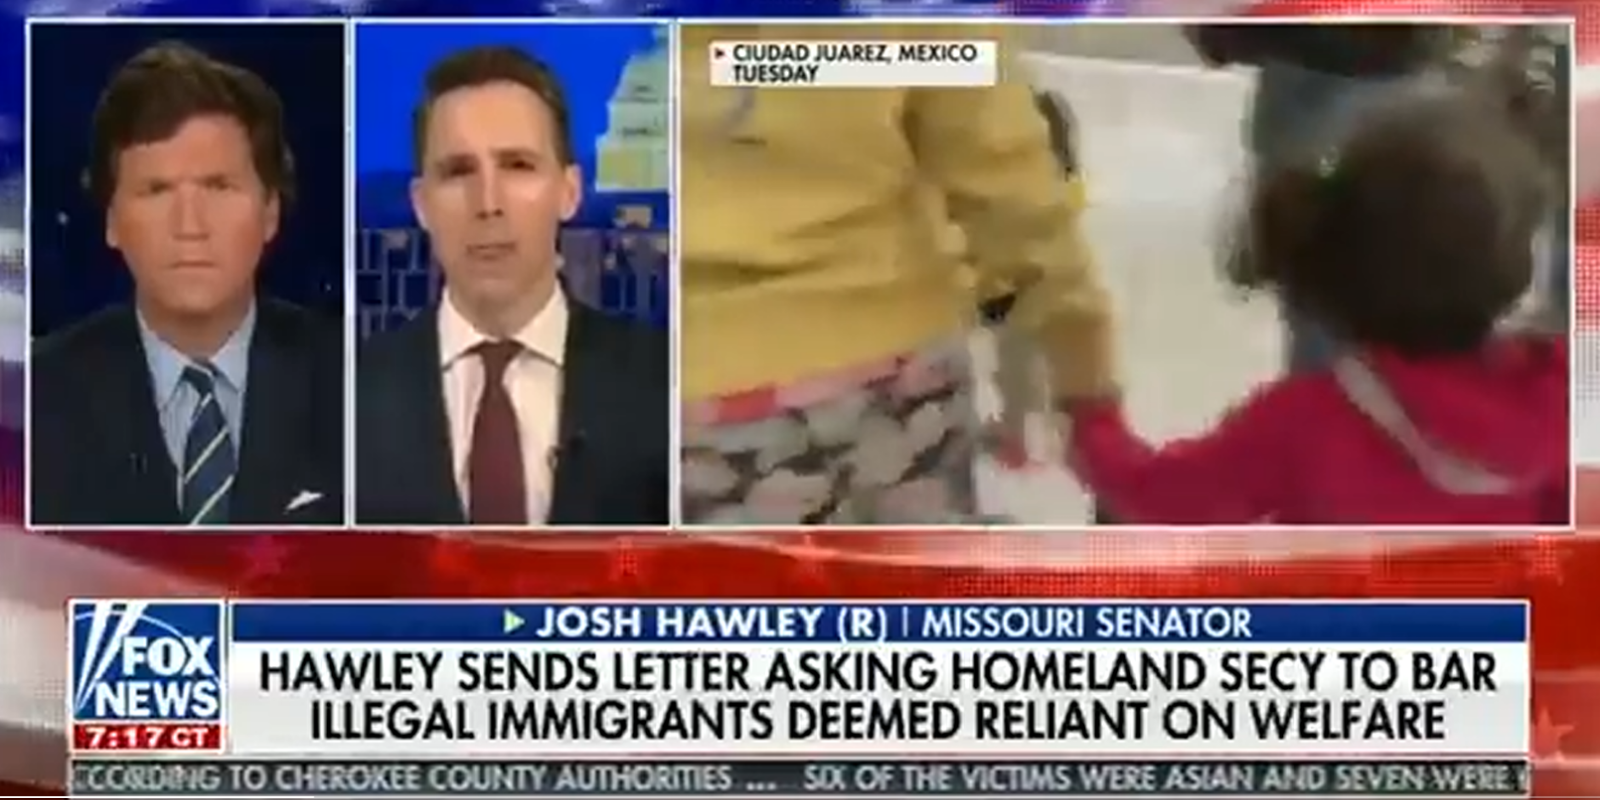 WATCH: Senator Hawley says southern border crisis is due to Biden's open border policies